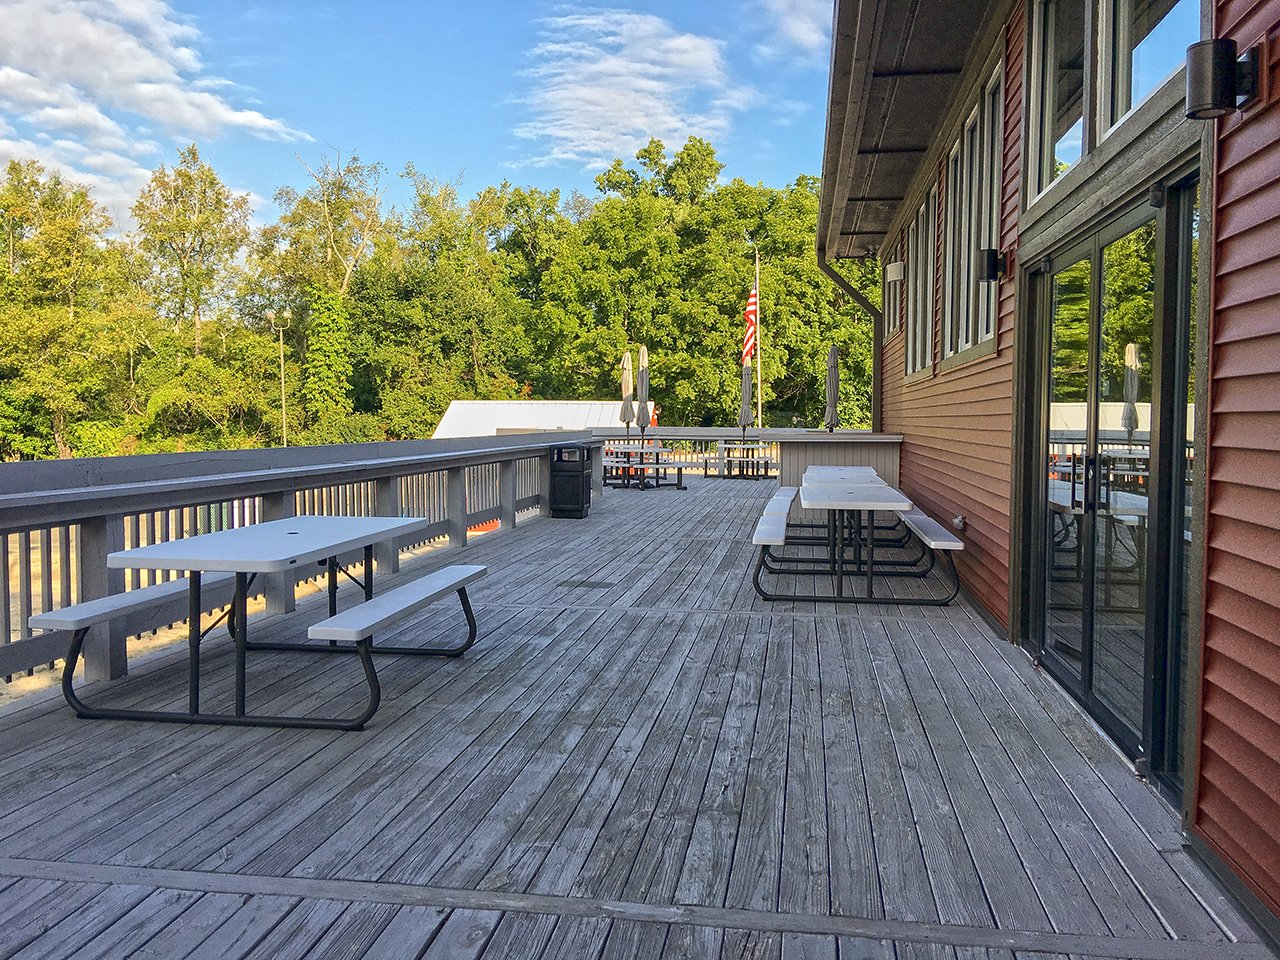 The deck at LCC